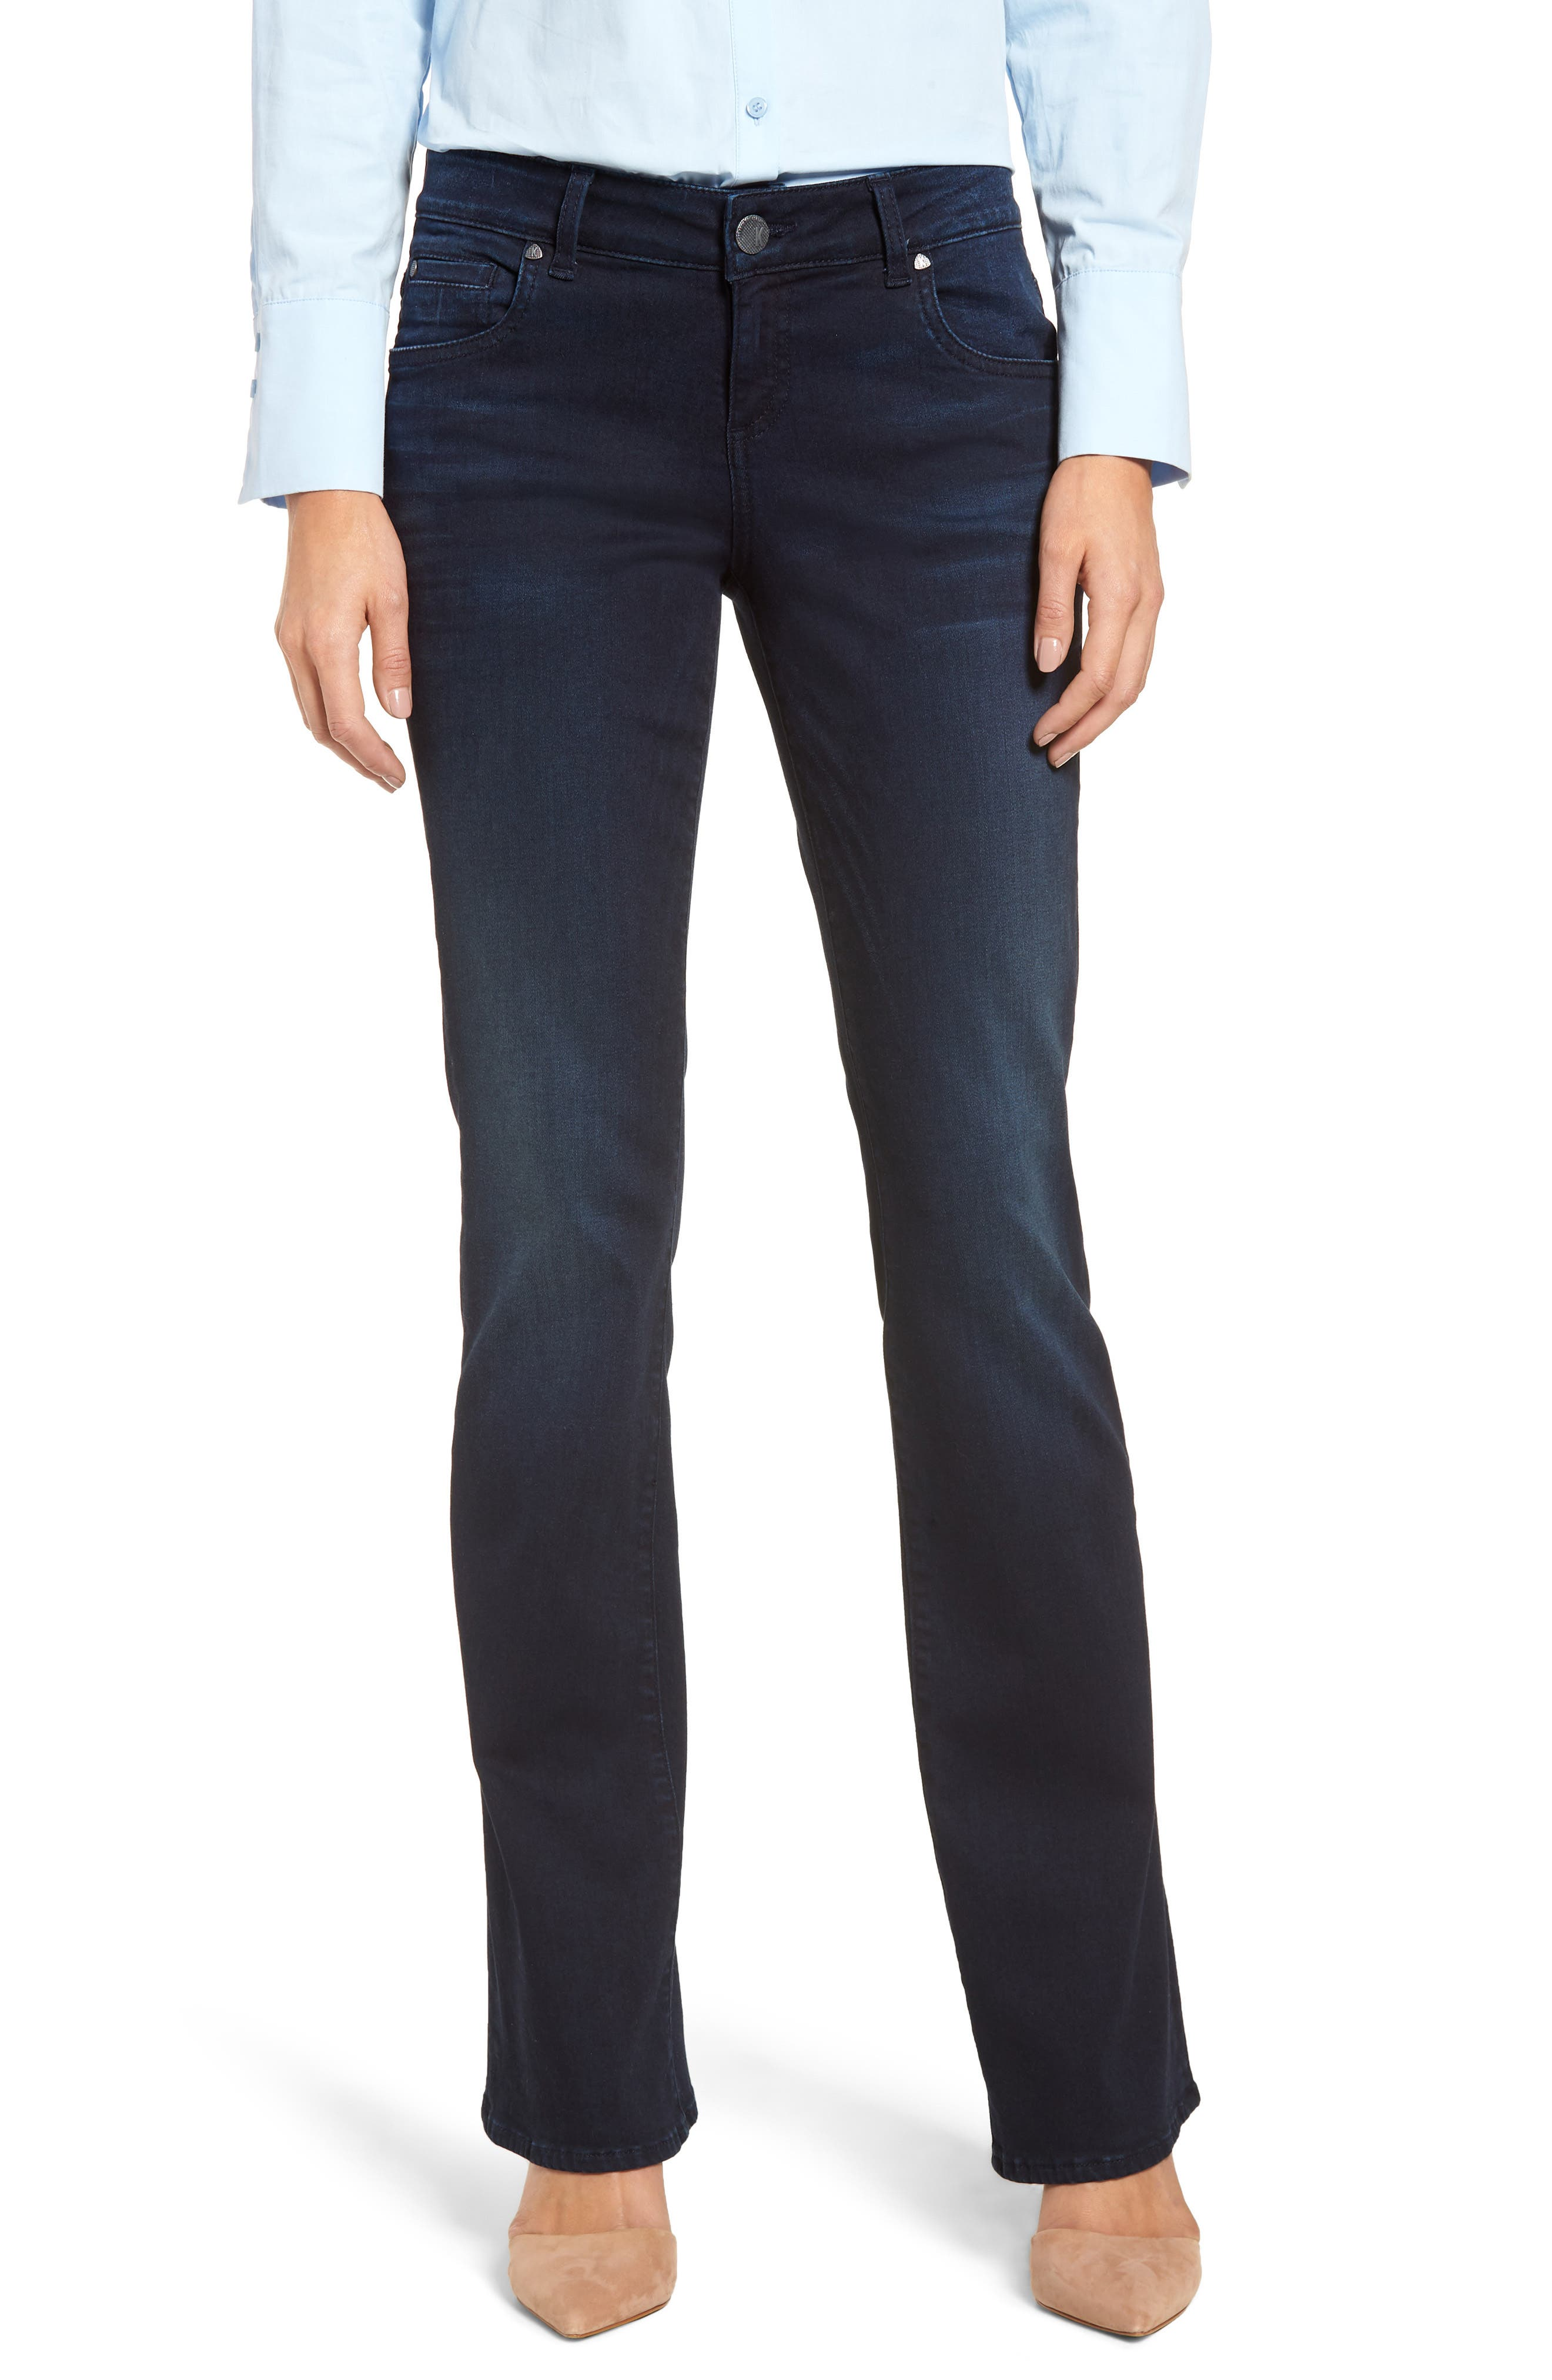 Natalie Stretch Bootleg Jeans KUT FROM THE KLOTH $59.96 (Nordstrom)